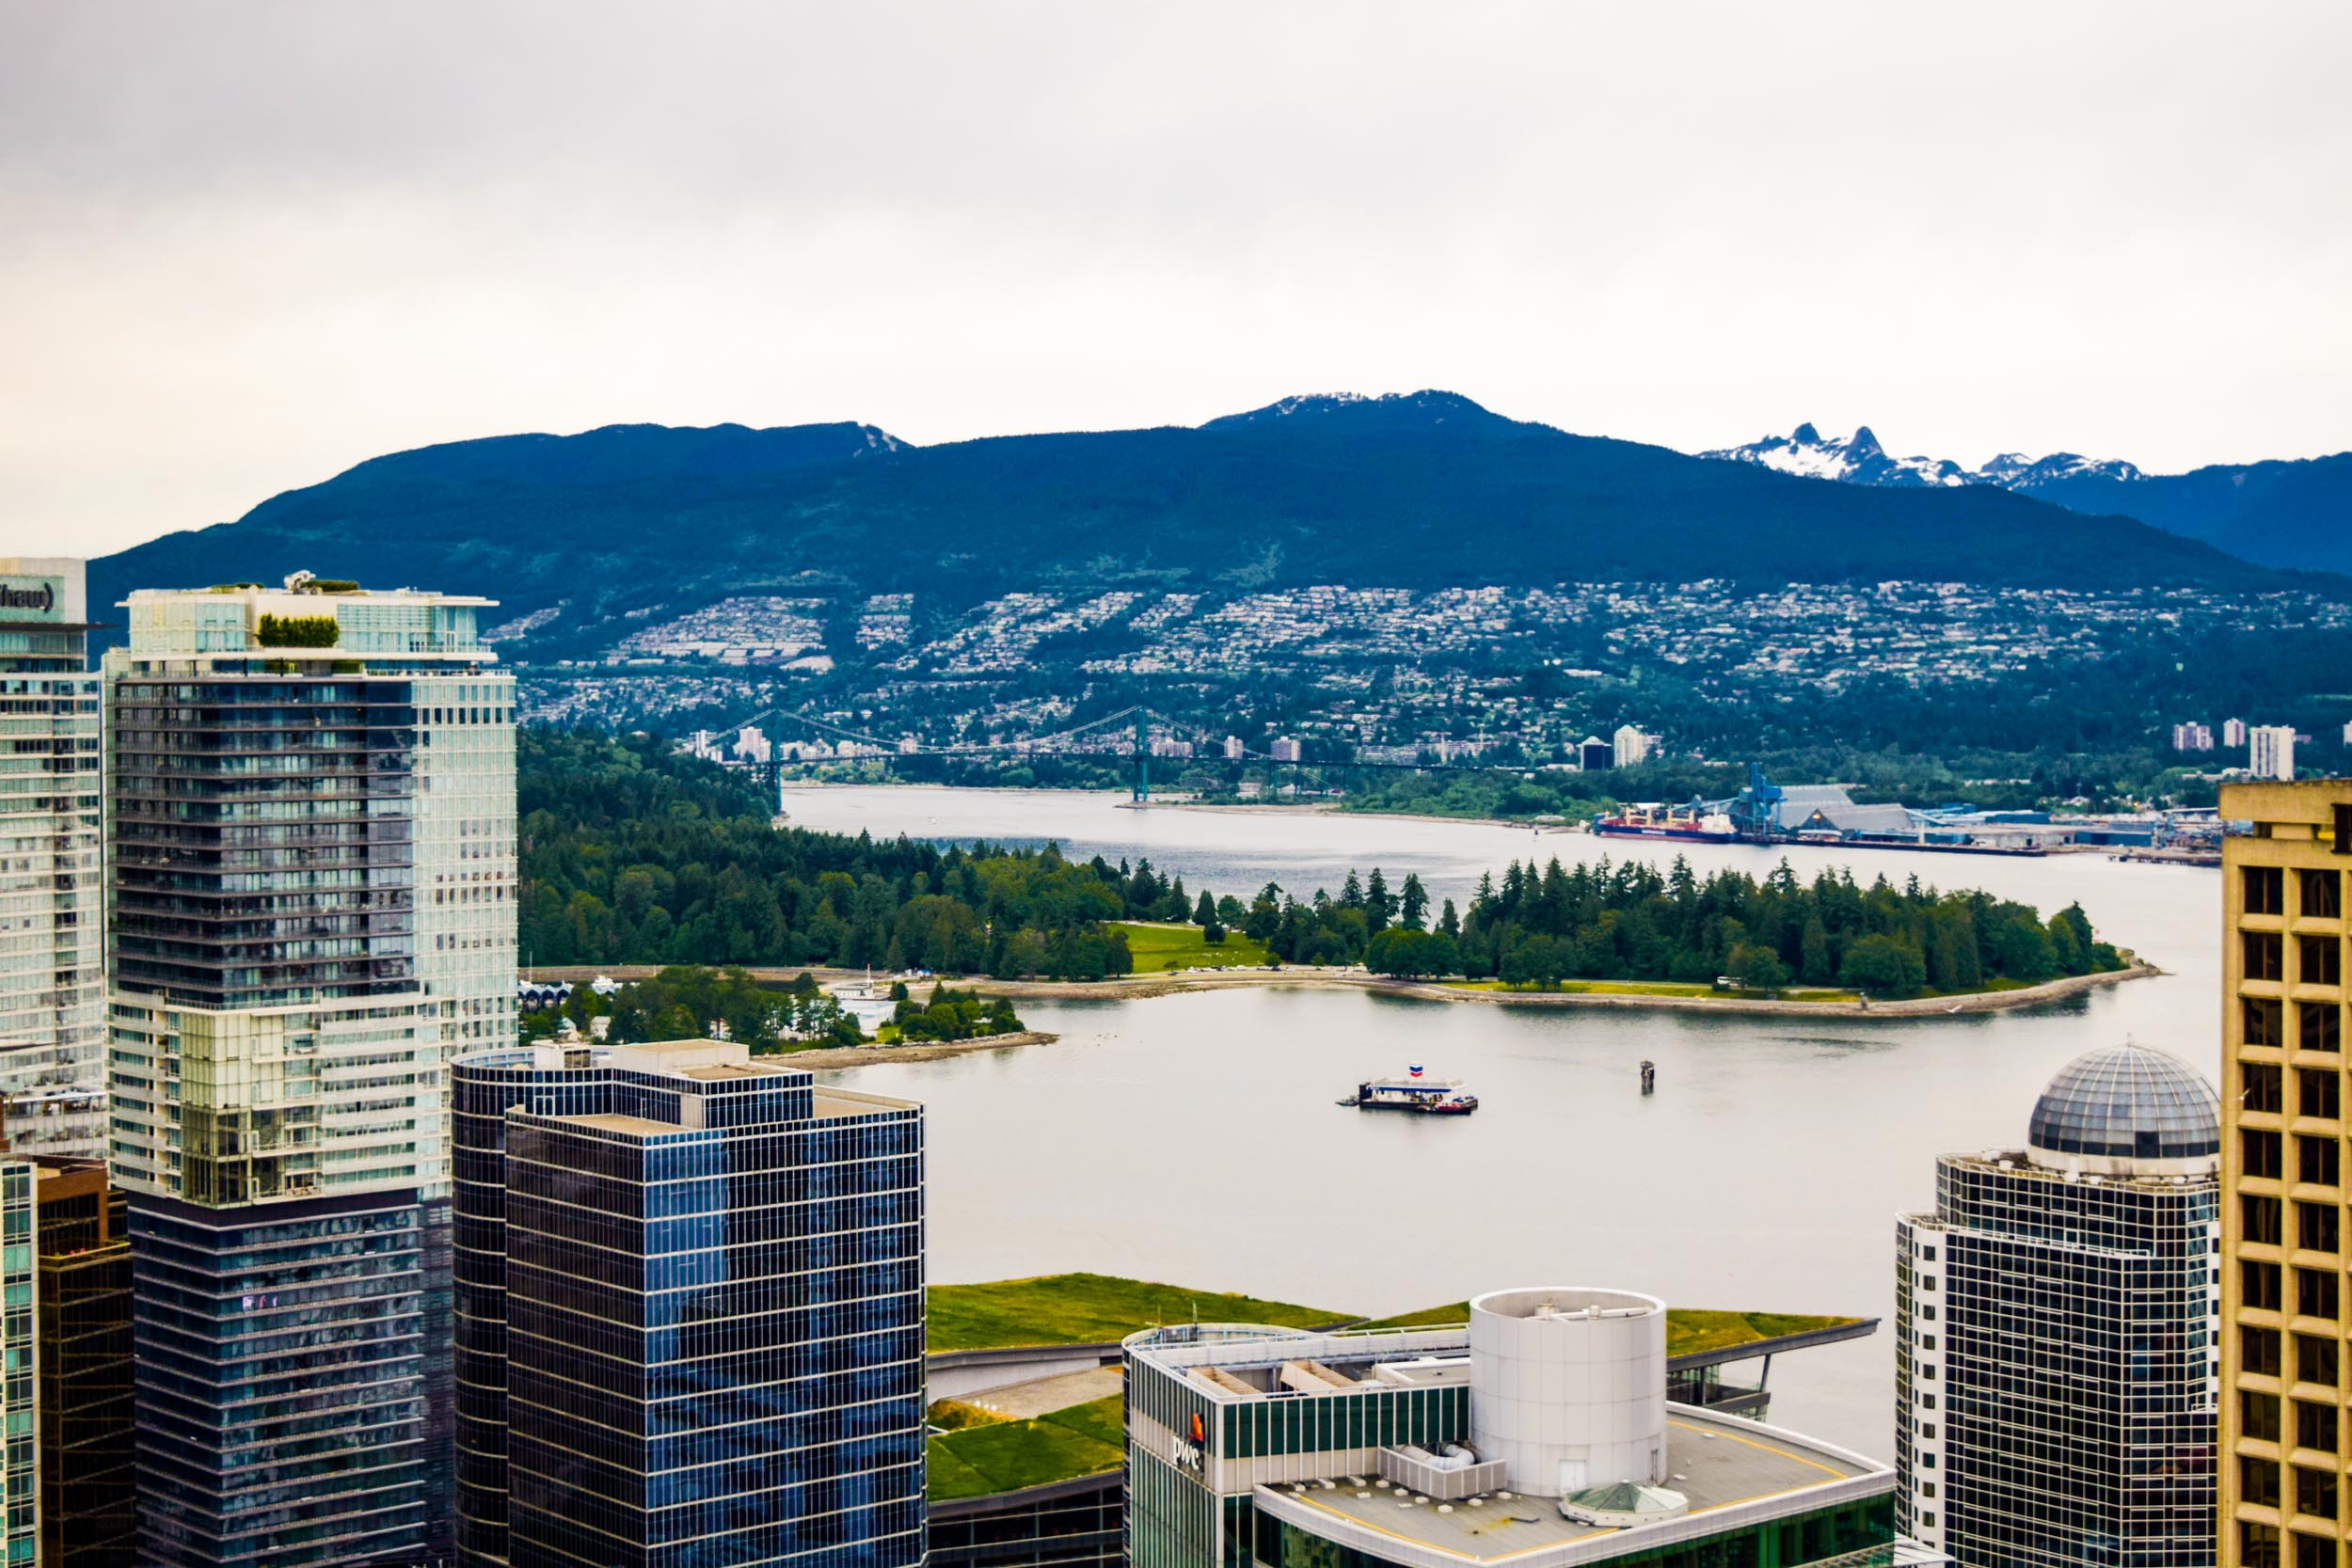 Views over Vancouver taken from the Vancouver Lookout Tower. The Vancouver Convention Centre, Stanley Park, Lions Gate Bridge and North Vancouver are all in view.